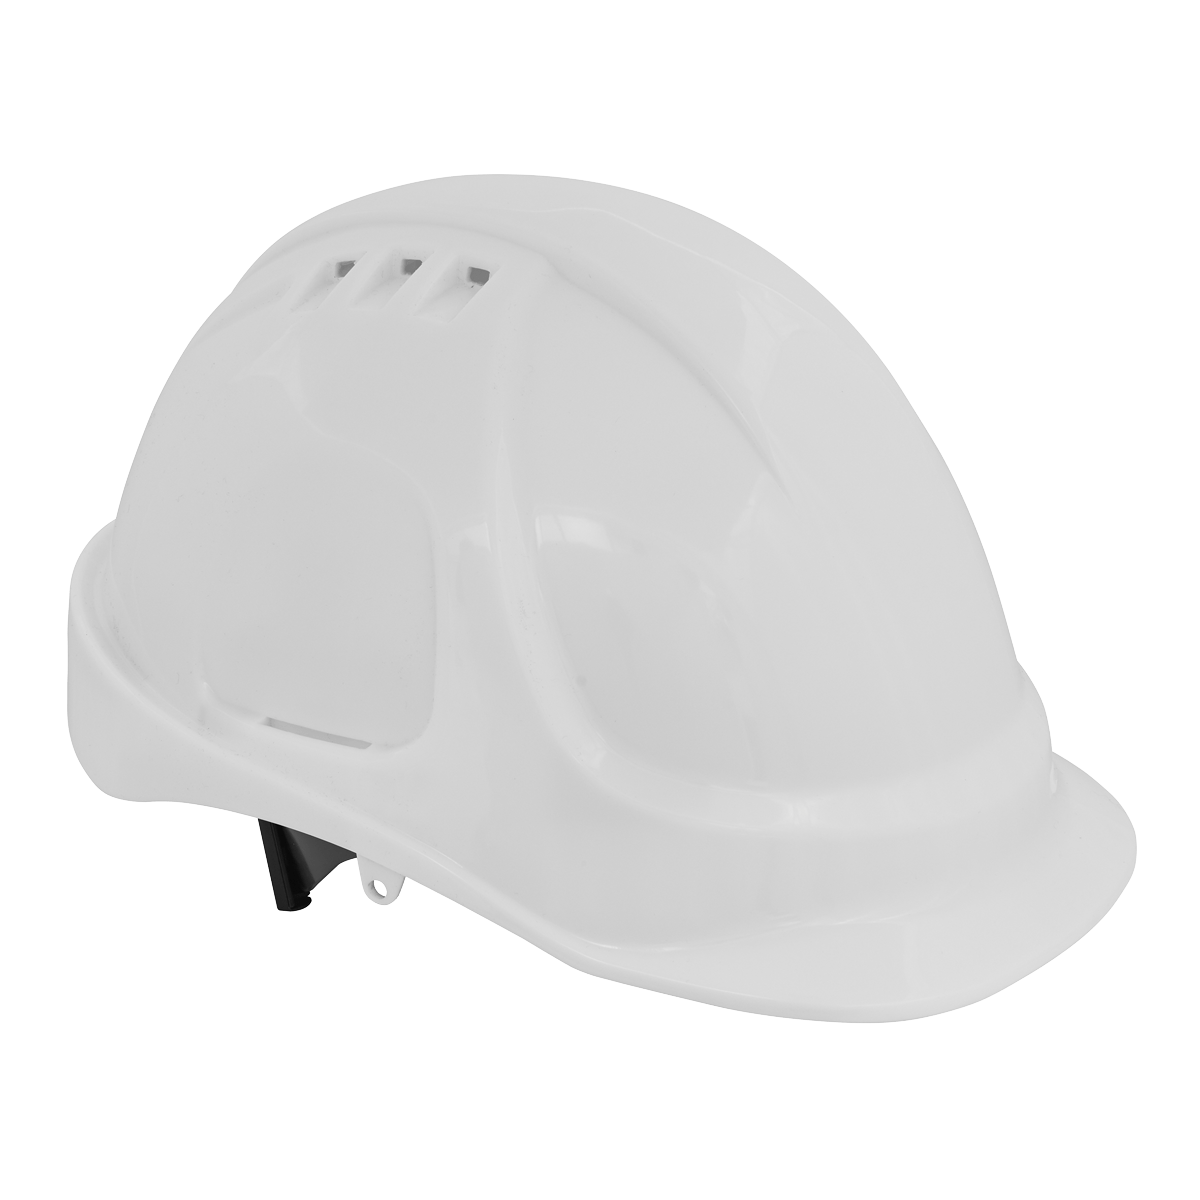 Sealey Safety Helmet - Vented (White) 502W   Material webbing cradle rather than rigid plastic means greater comfort when wearing all day.   toolforce.ie